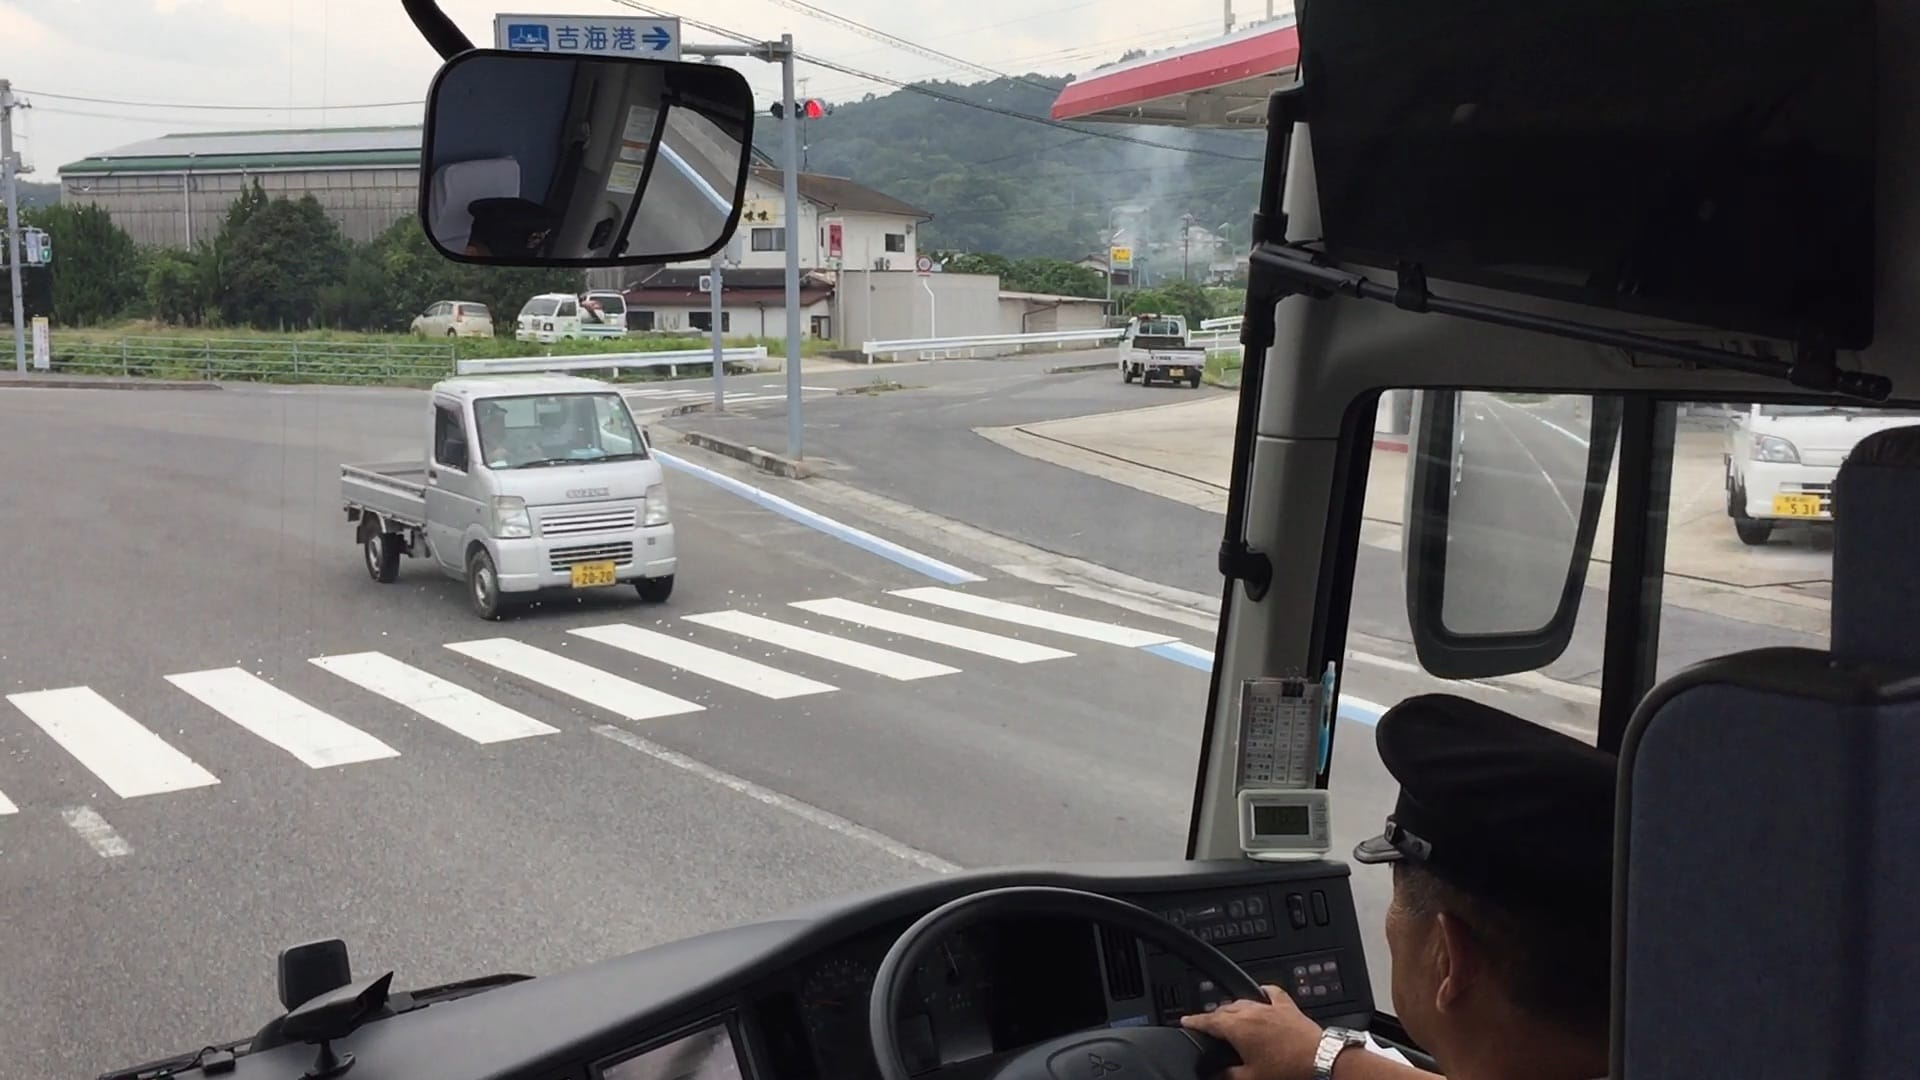 Boarding the bus back to JR Imabari Station